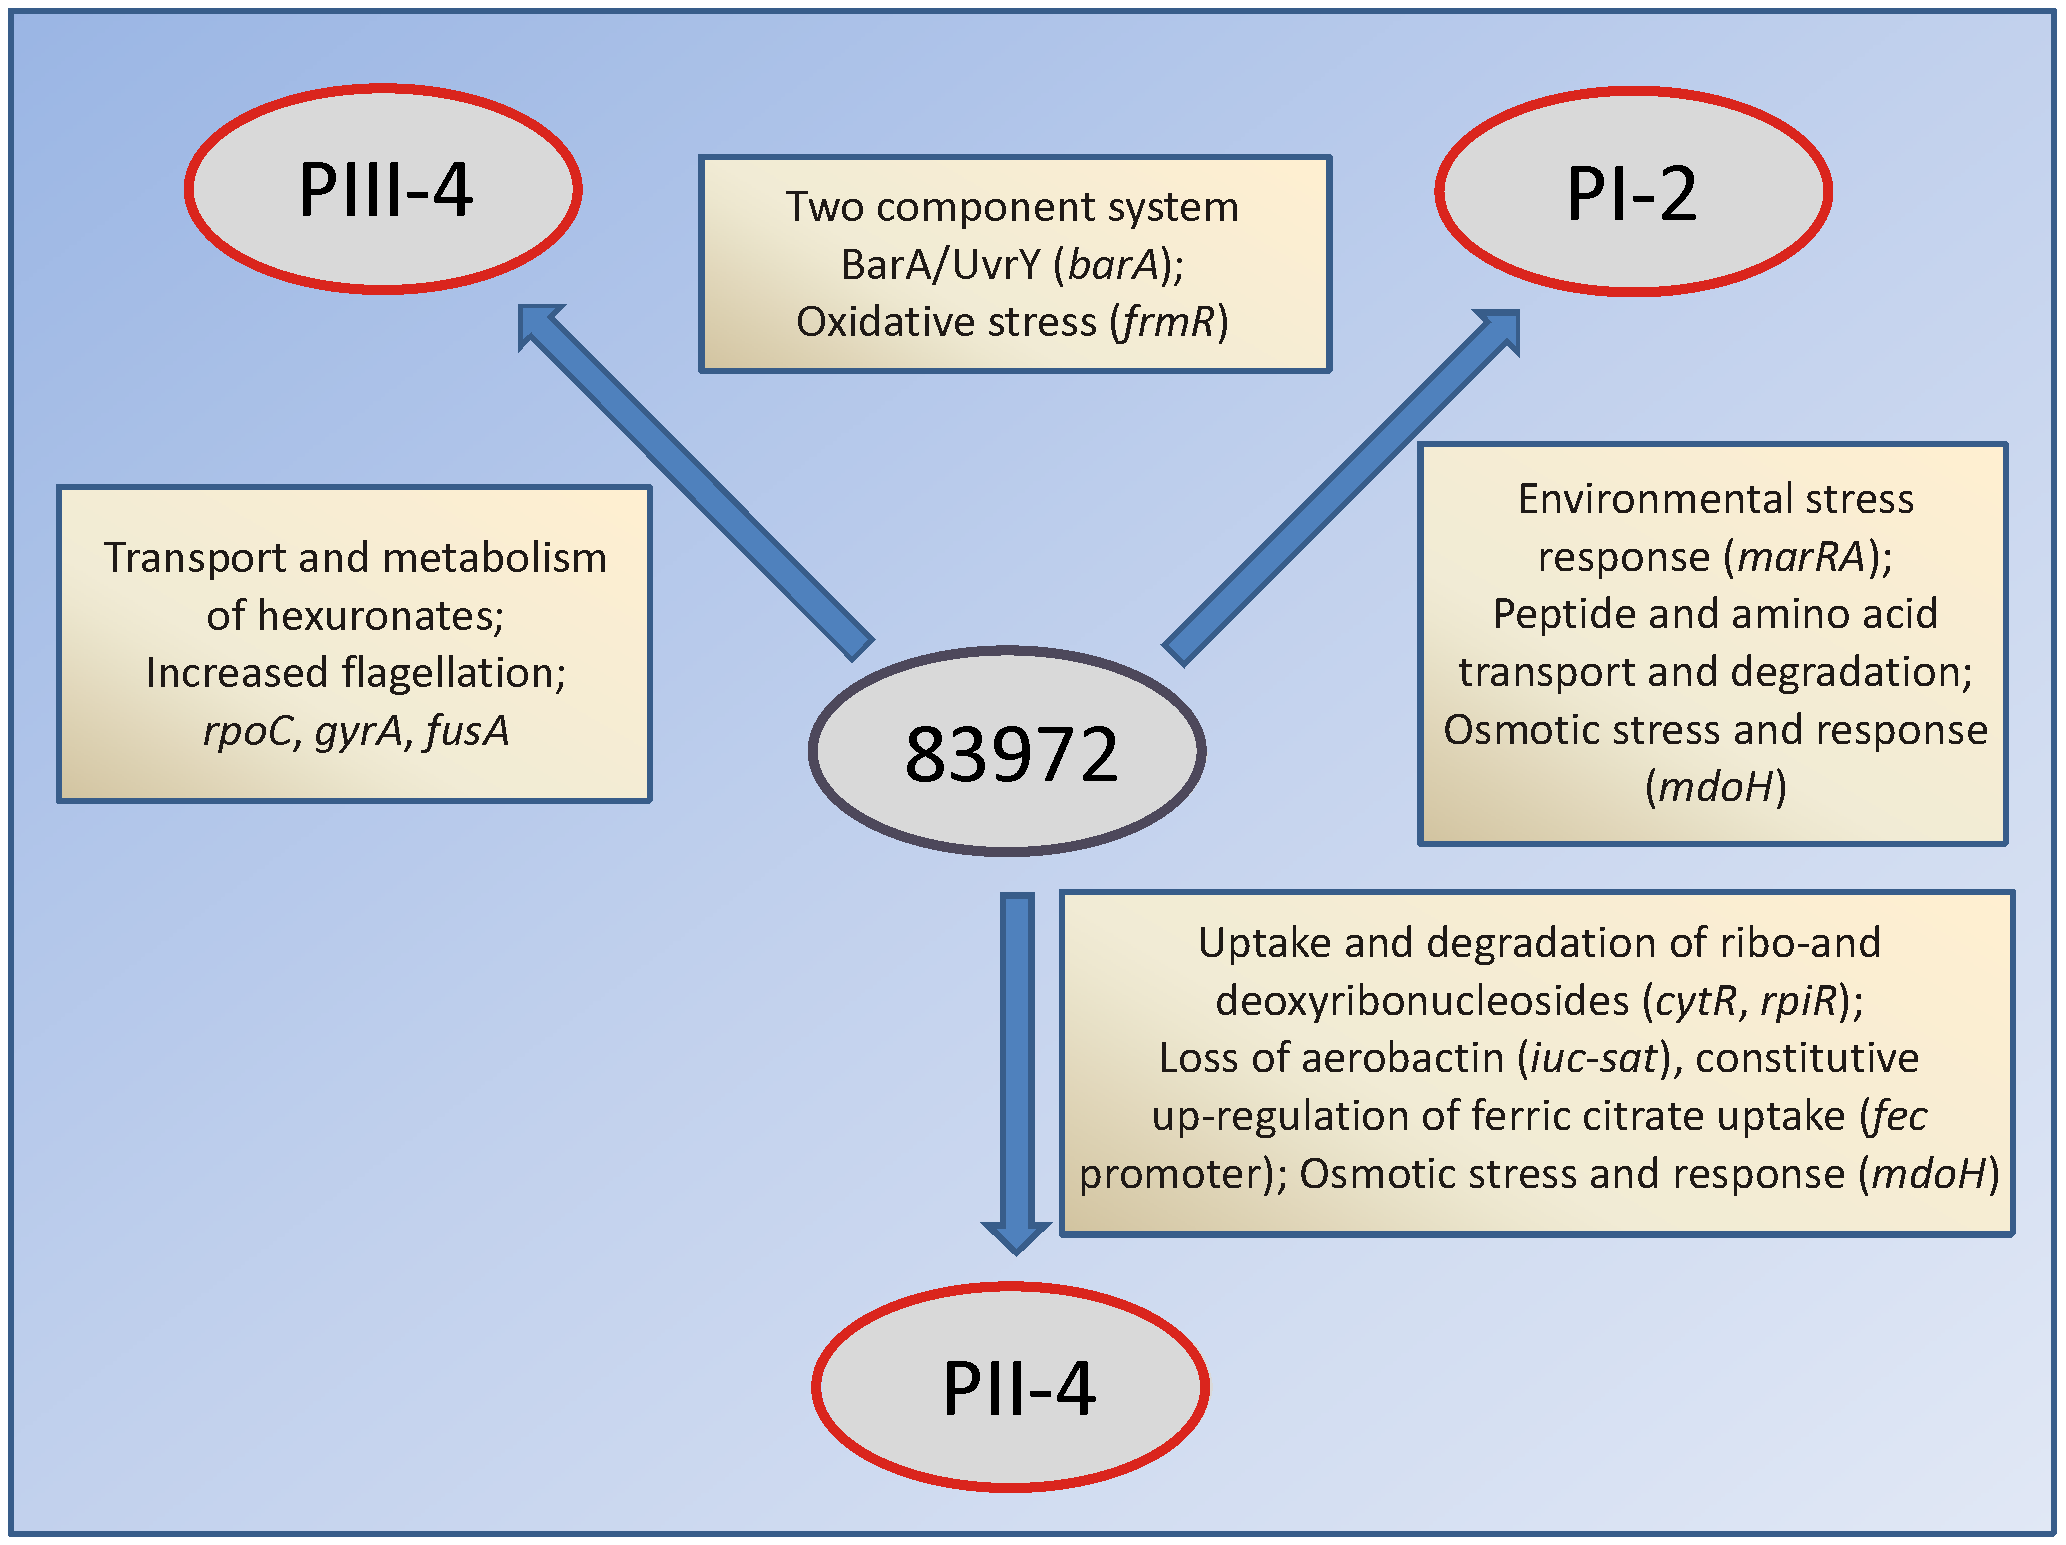 Different adaptational strategies of <i>E. coli</i> 83972 upon prolonged growth in the urinary bladder of human hosts.